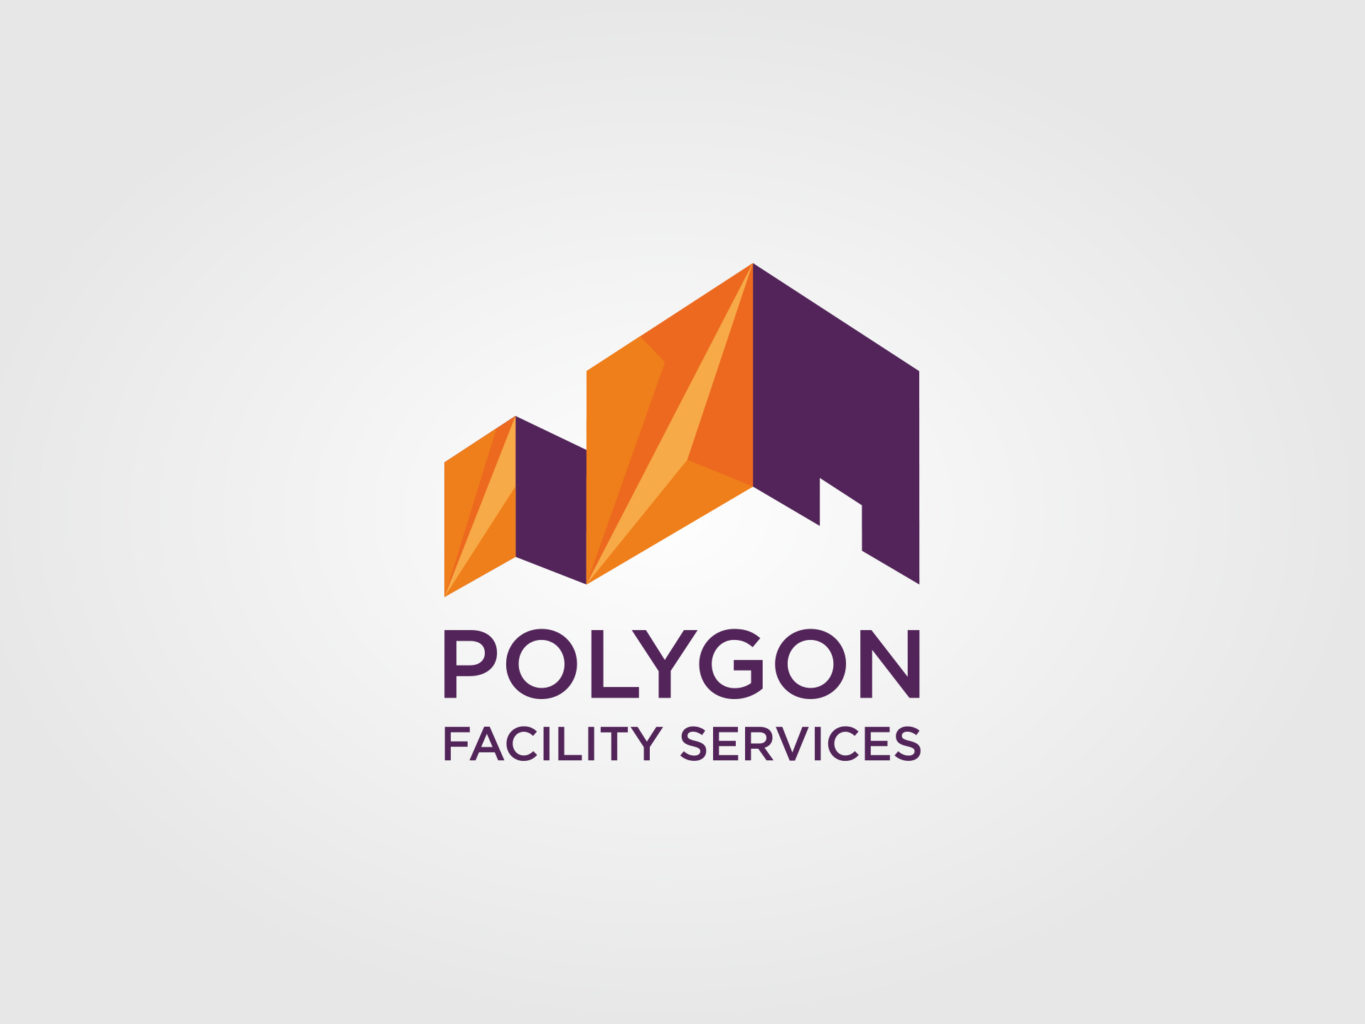 polygon facility services logo by fiftyeggz